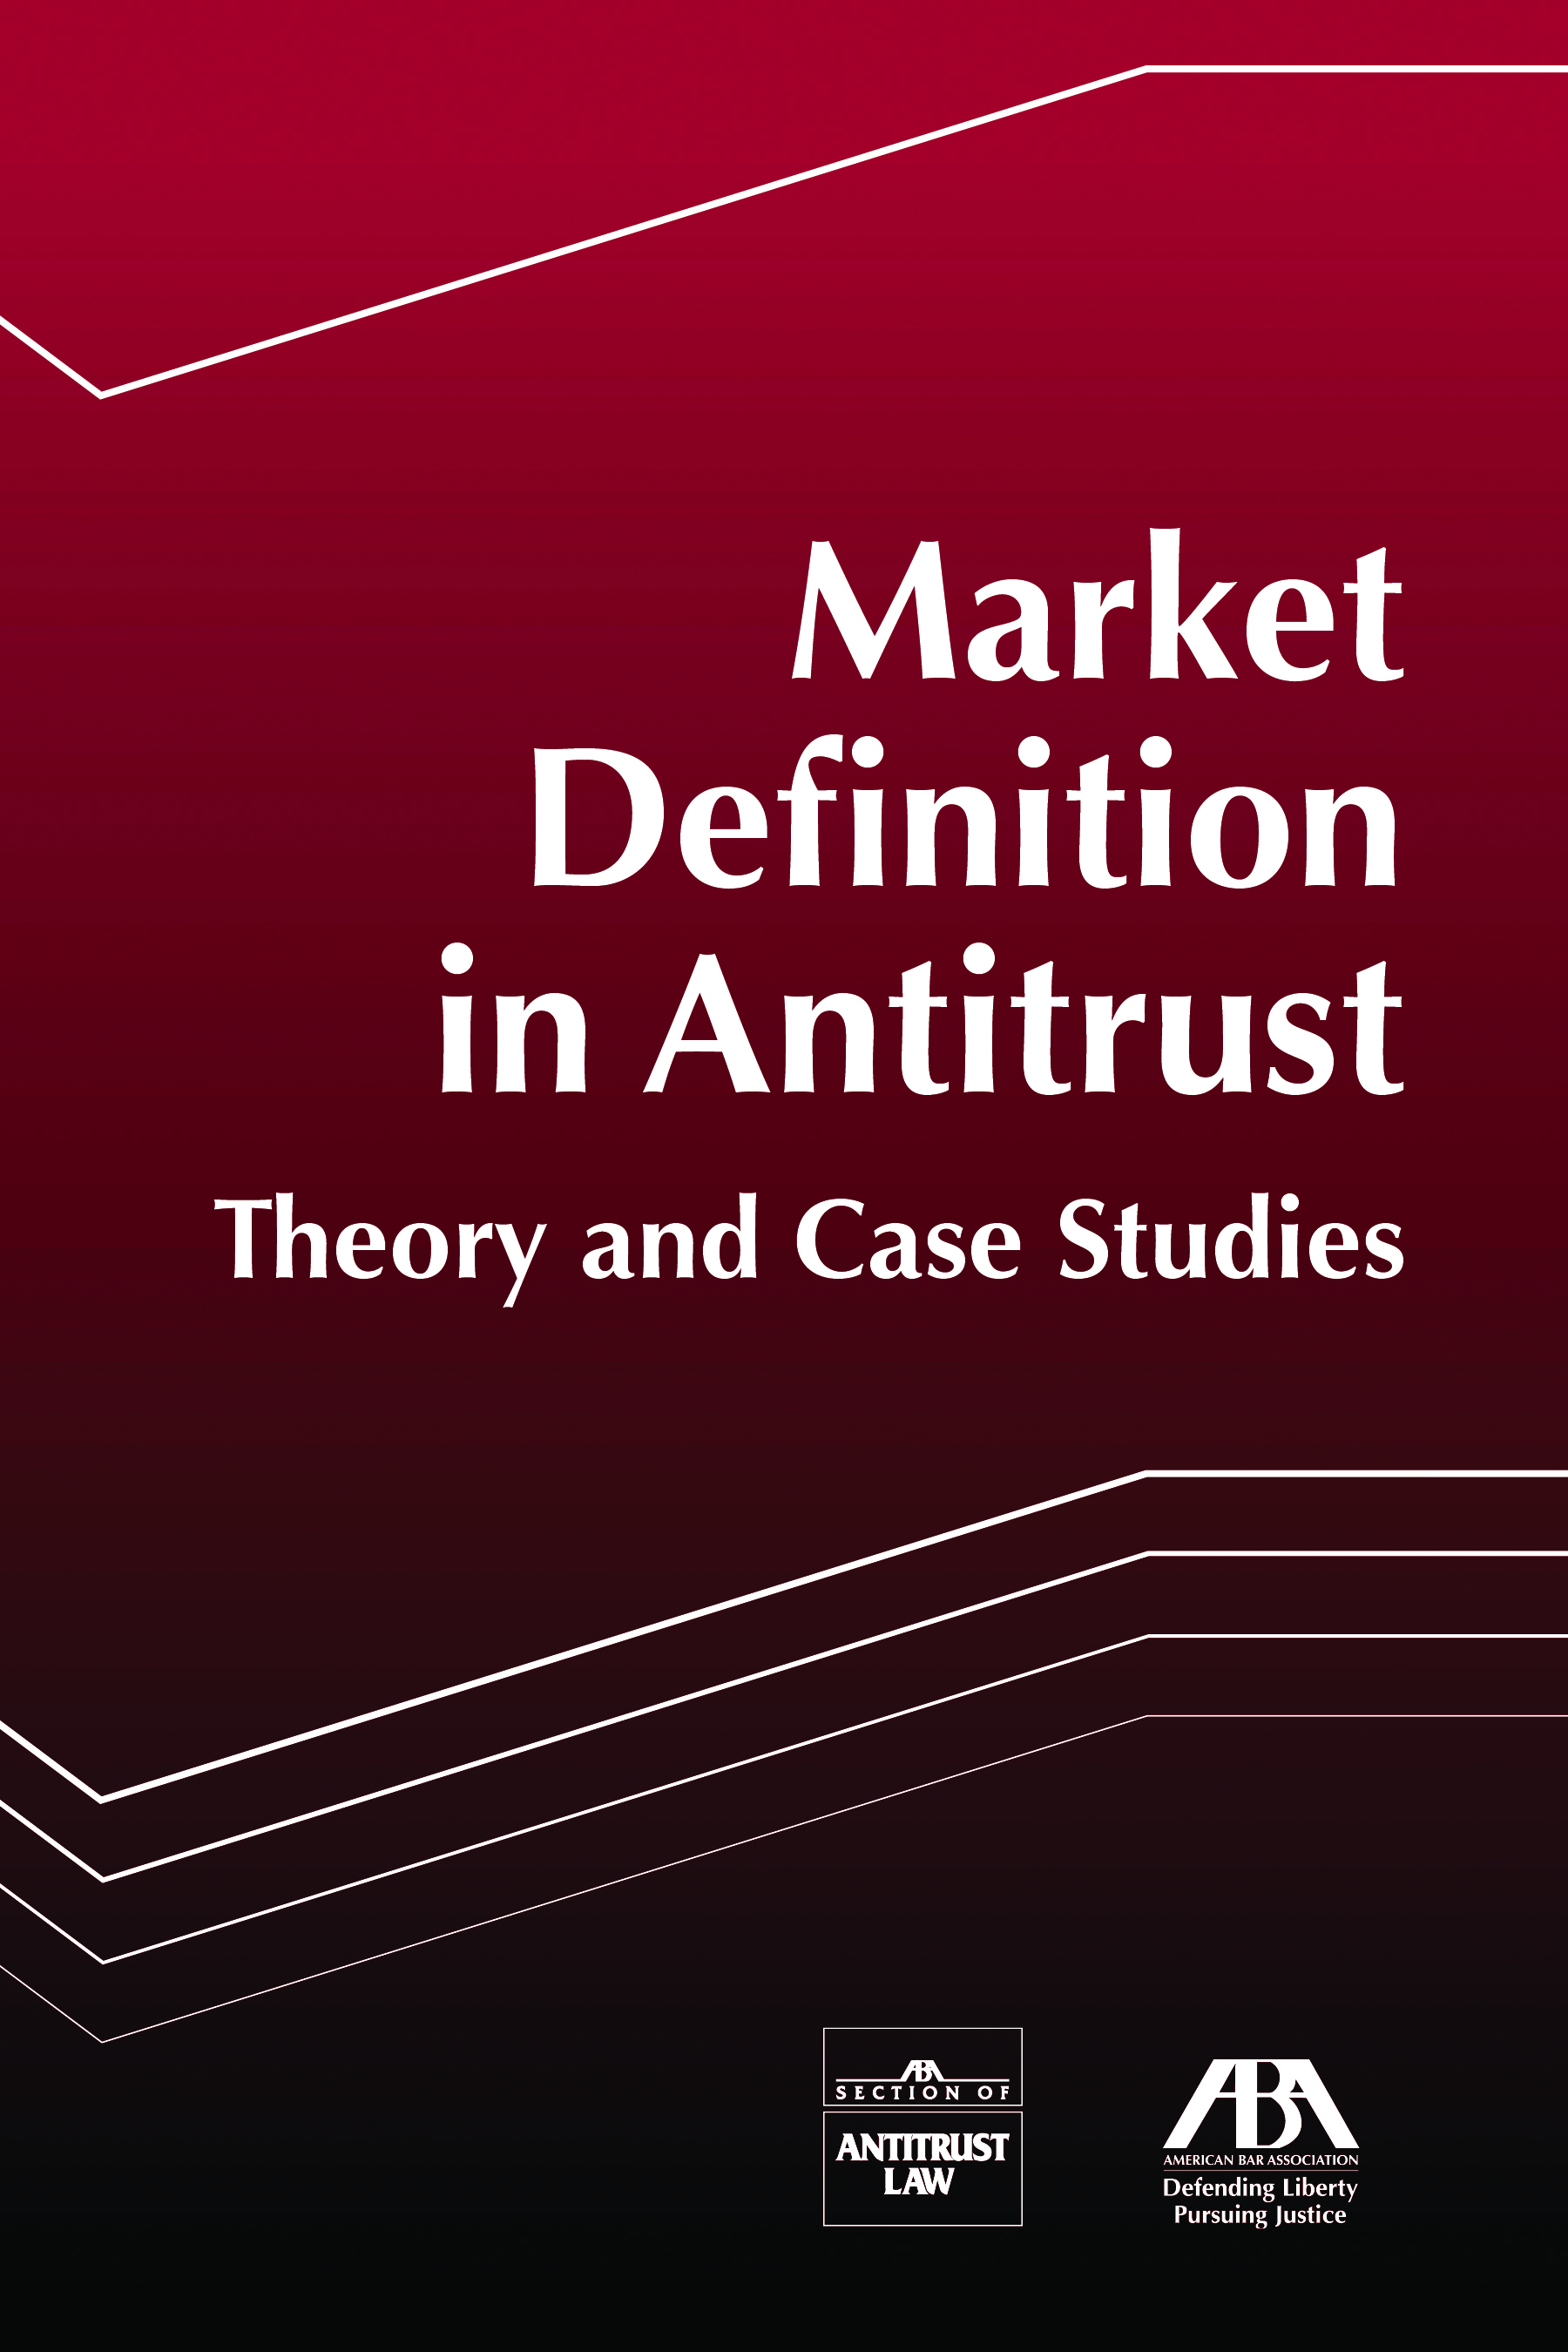 Market Definition in Antitrust Theory and Case Studies